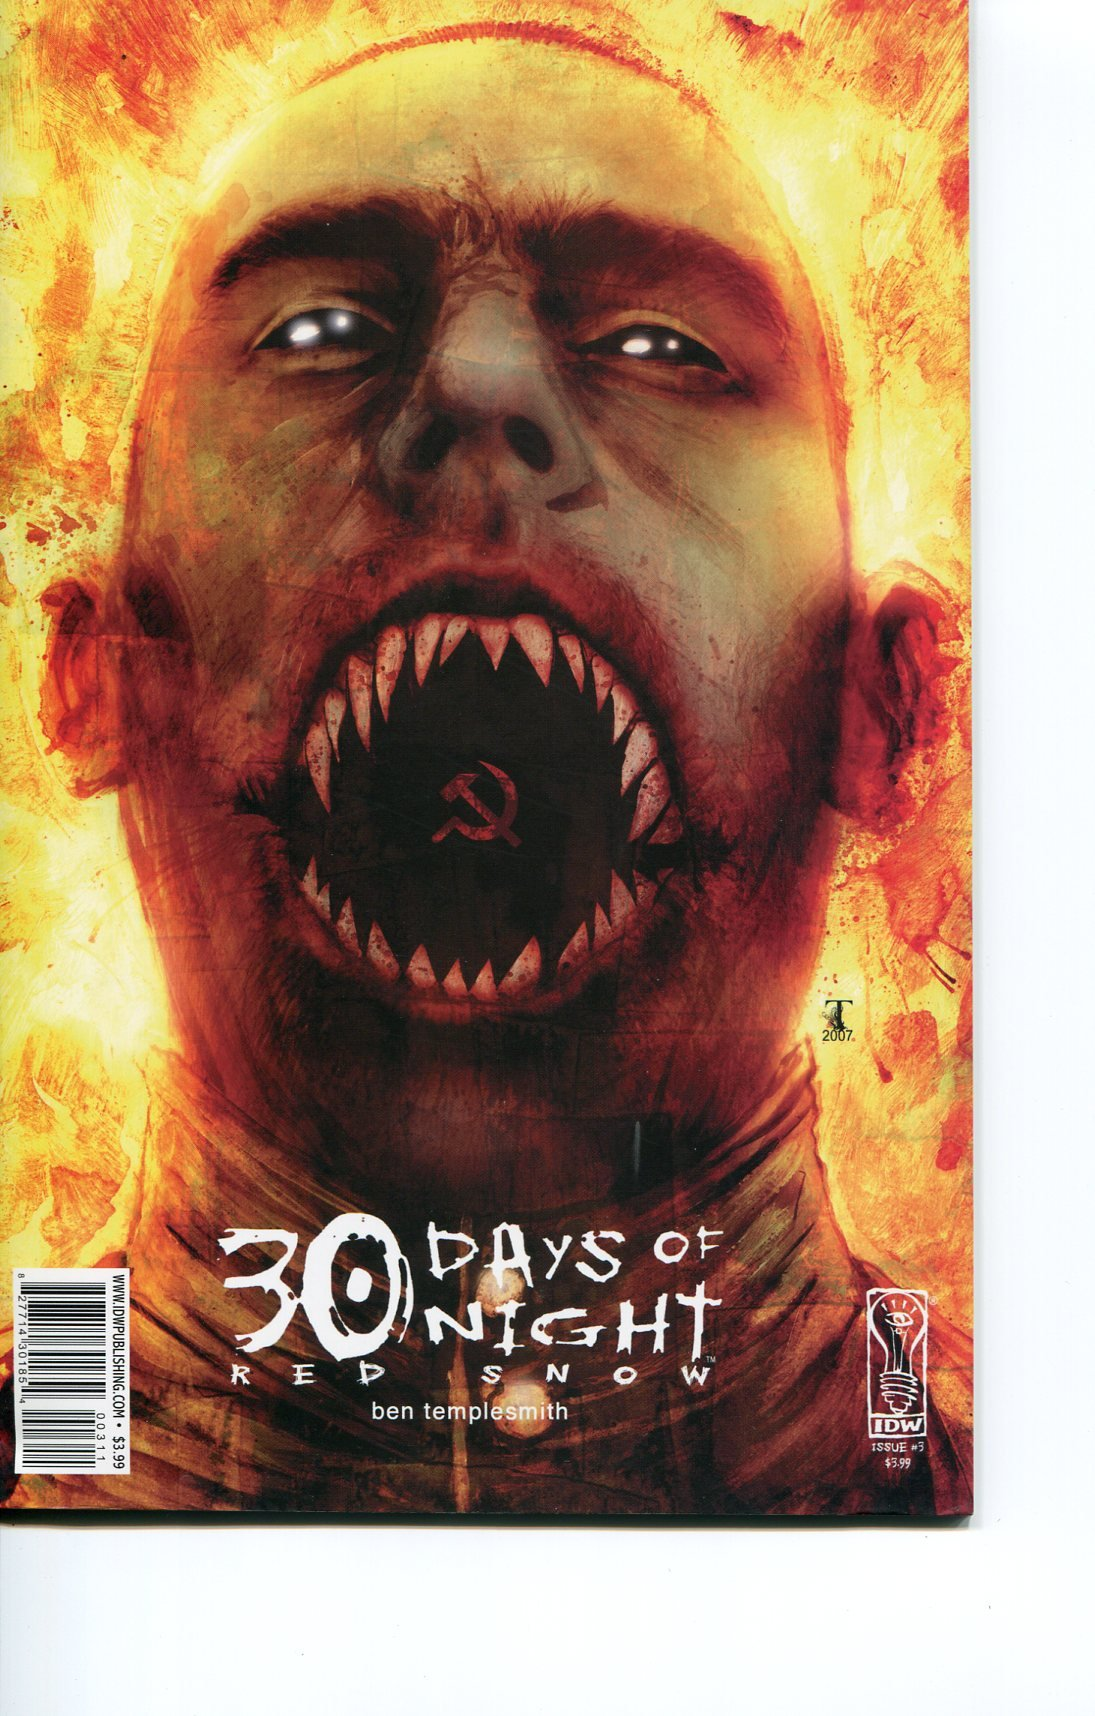 30 DAYS OF NIGHT RED SNOW #3 ((VOL. 1 2007)) PDF